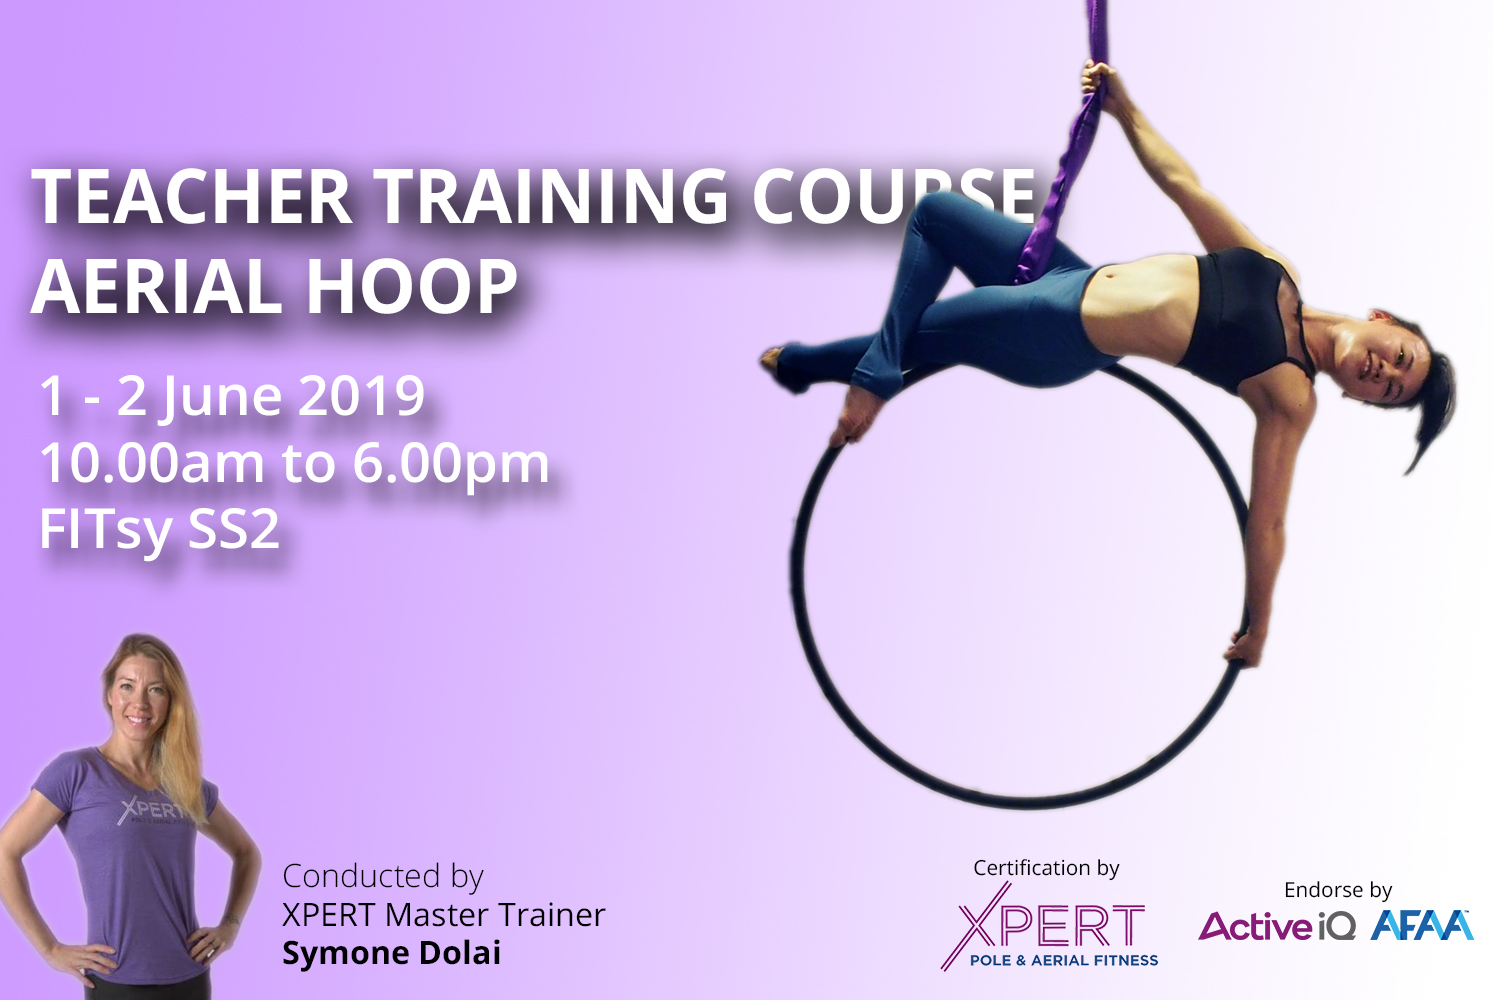 Aerial Hook / Lyra Teacher Training Course - Your journey to become instructor start here - June 2019 FITsy